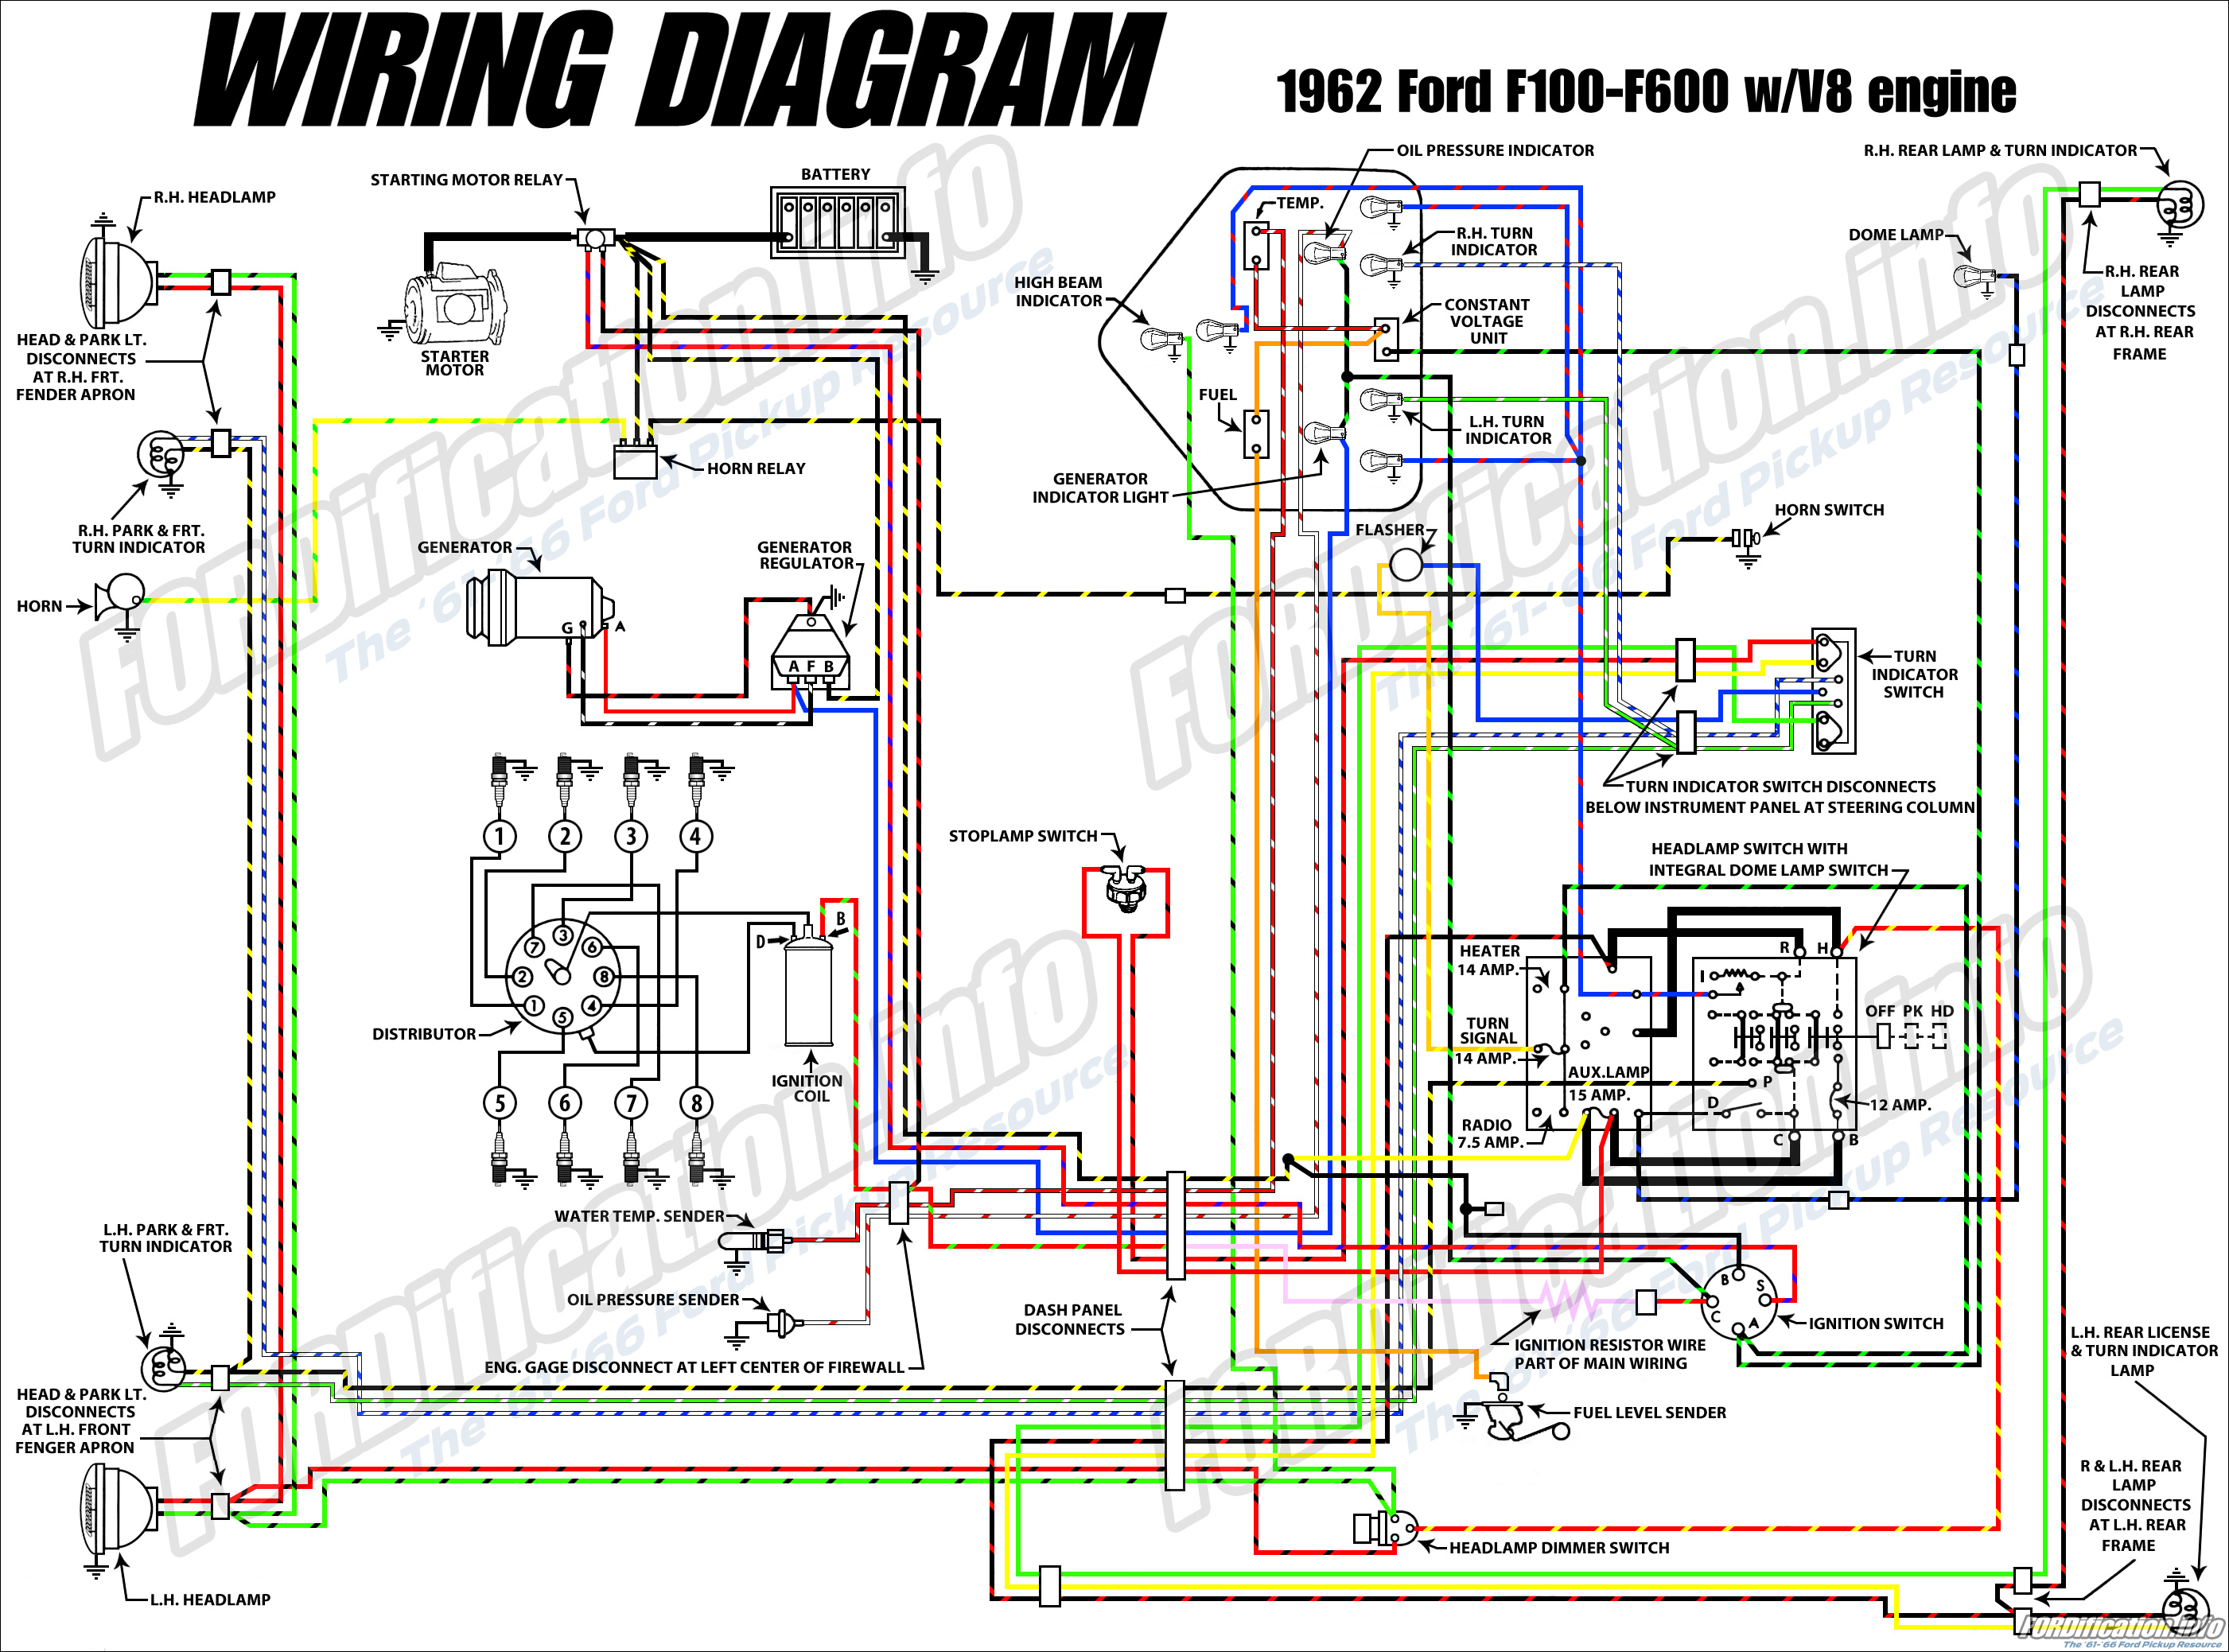 1975 Ford Truck Wiring Diagrams | Wiring Diagram  Chevy Truck Headlight Wiring Diagram on